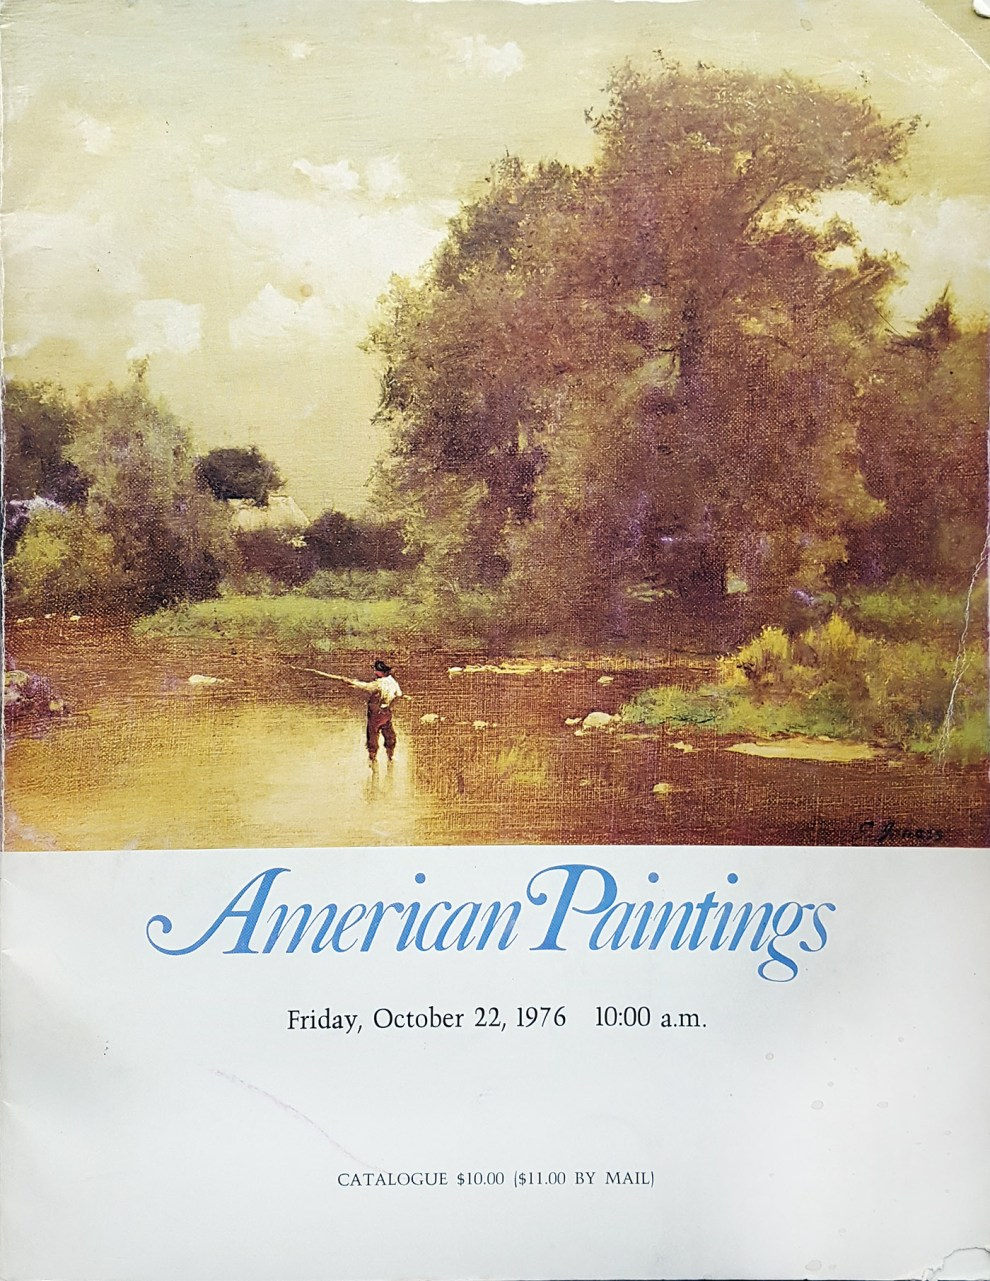 "Richard A. Bourne Company, Inc. [1955-1997], Hyannis, MA, ""American paintings liquidating in part the collection of the late Daniel Kurland of Philadelphia, PA; two important Massachusetts collections, plus a few selected paintings from estate collections"", October 20-22."